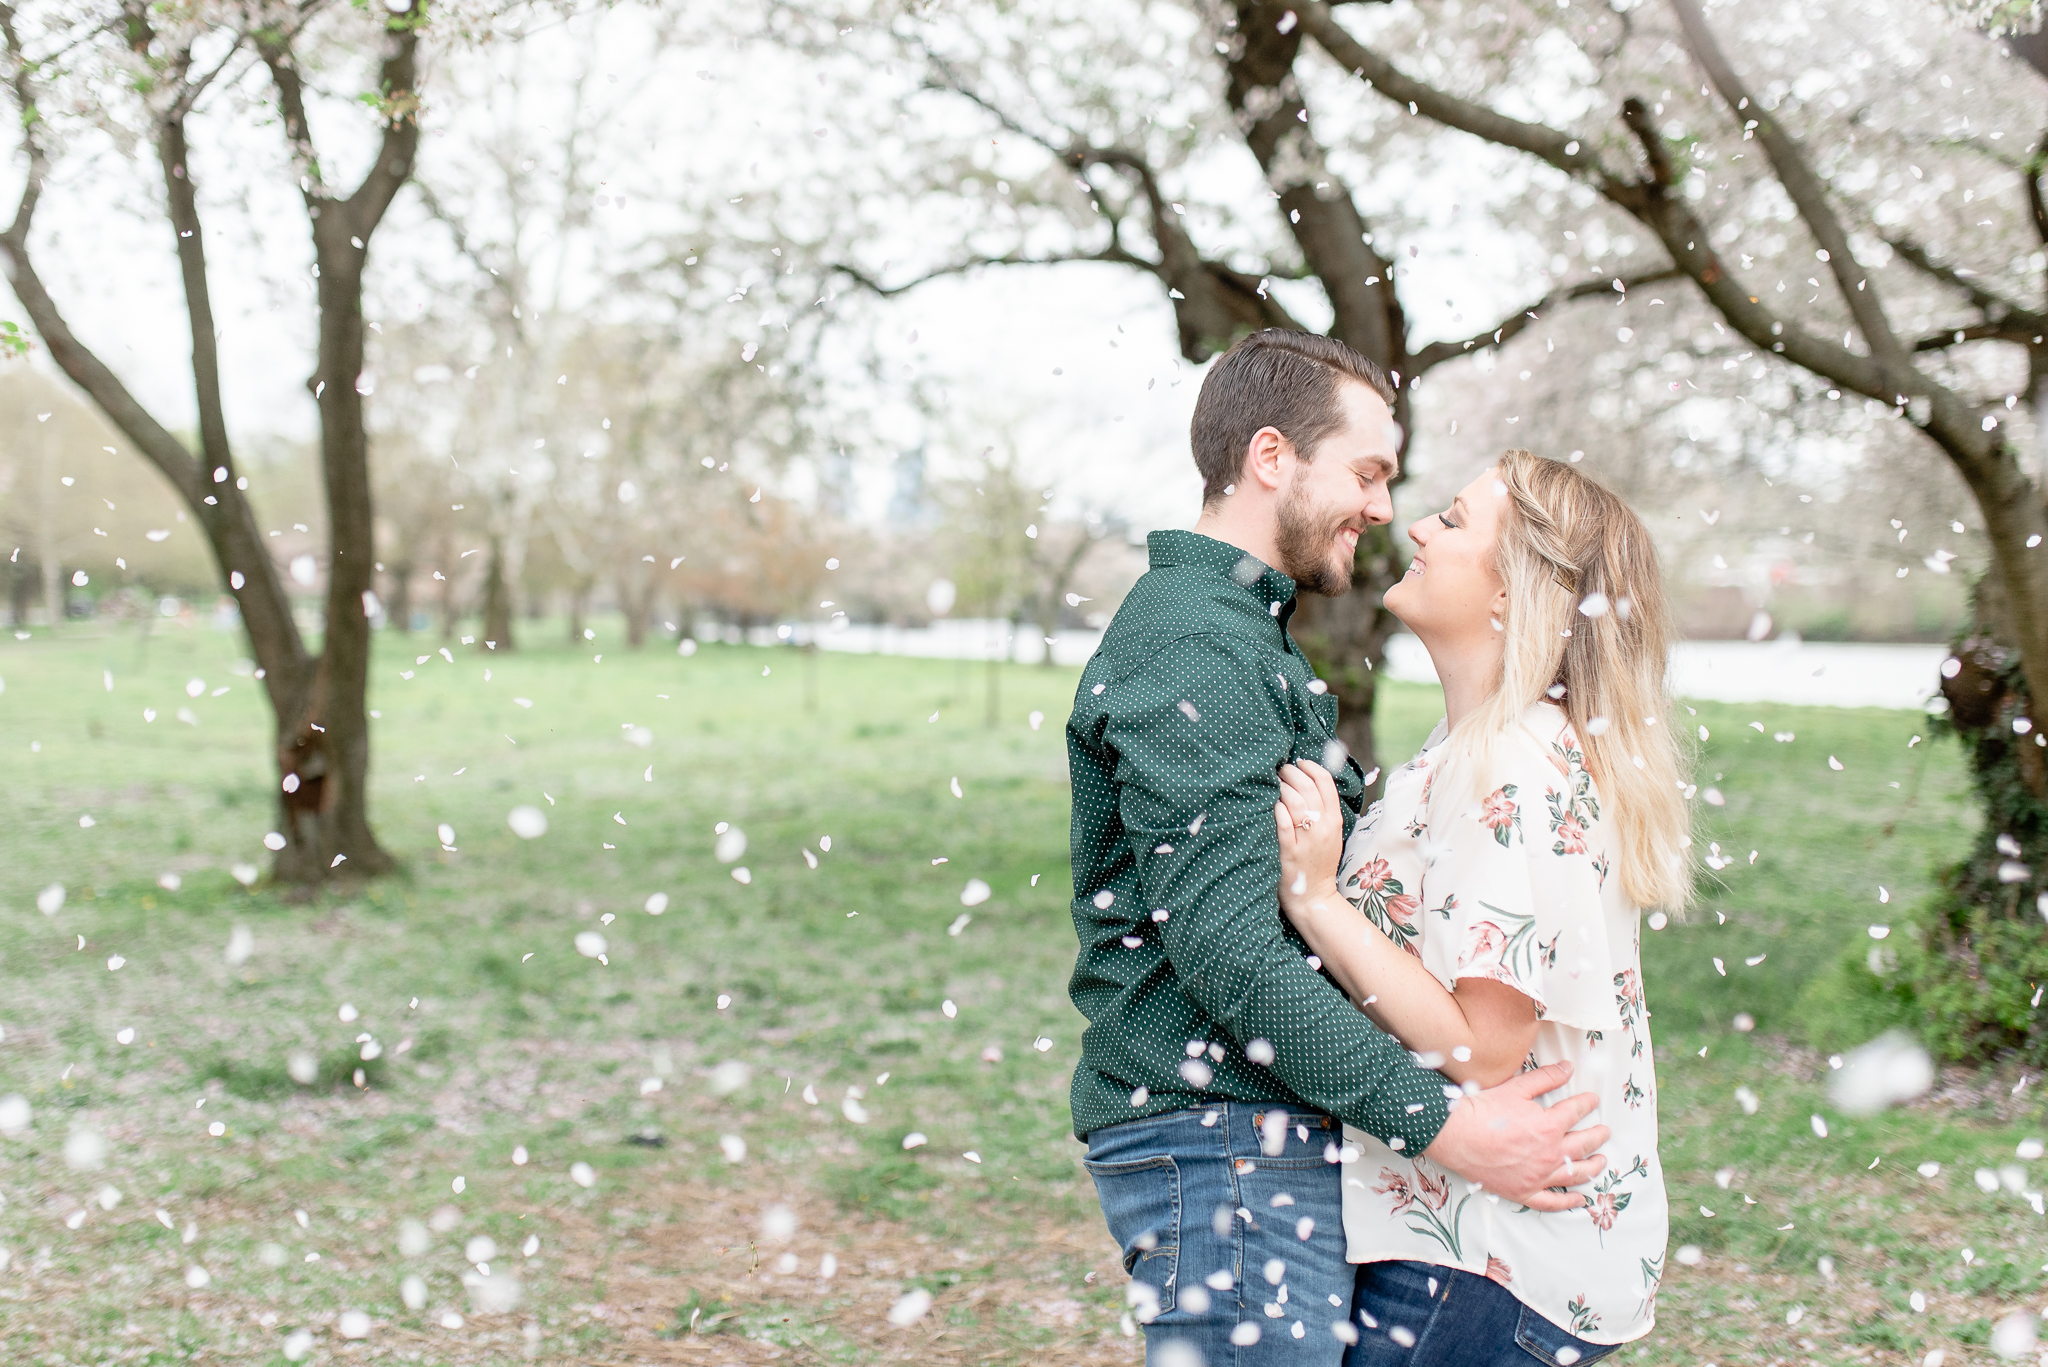 04_14_2019_Dana_Slifer_Photography_Alyssa_and_Brett_Engagement_Session_42.jpg